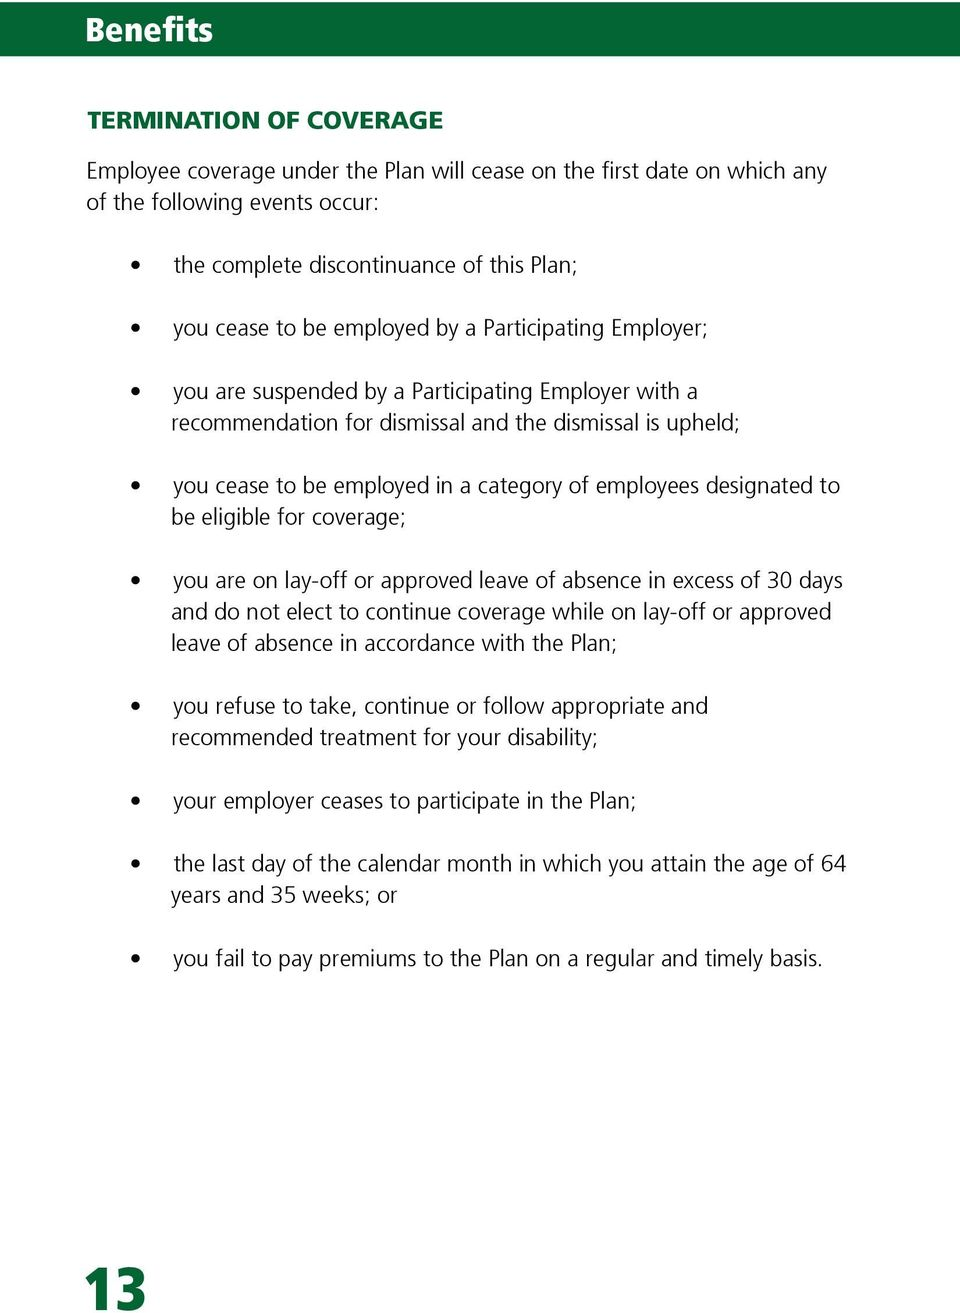 employees designated to be eligible for coverage; you are on lay-off or approved leave of absence in excess of 30 days and do not elect to continue coverage while on lay-off or approved leave of